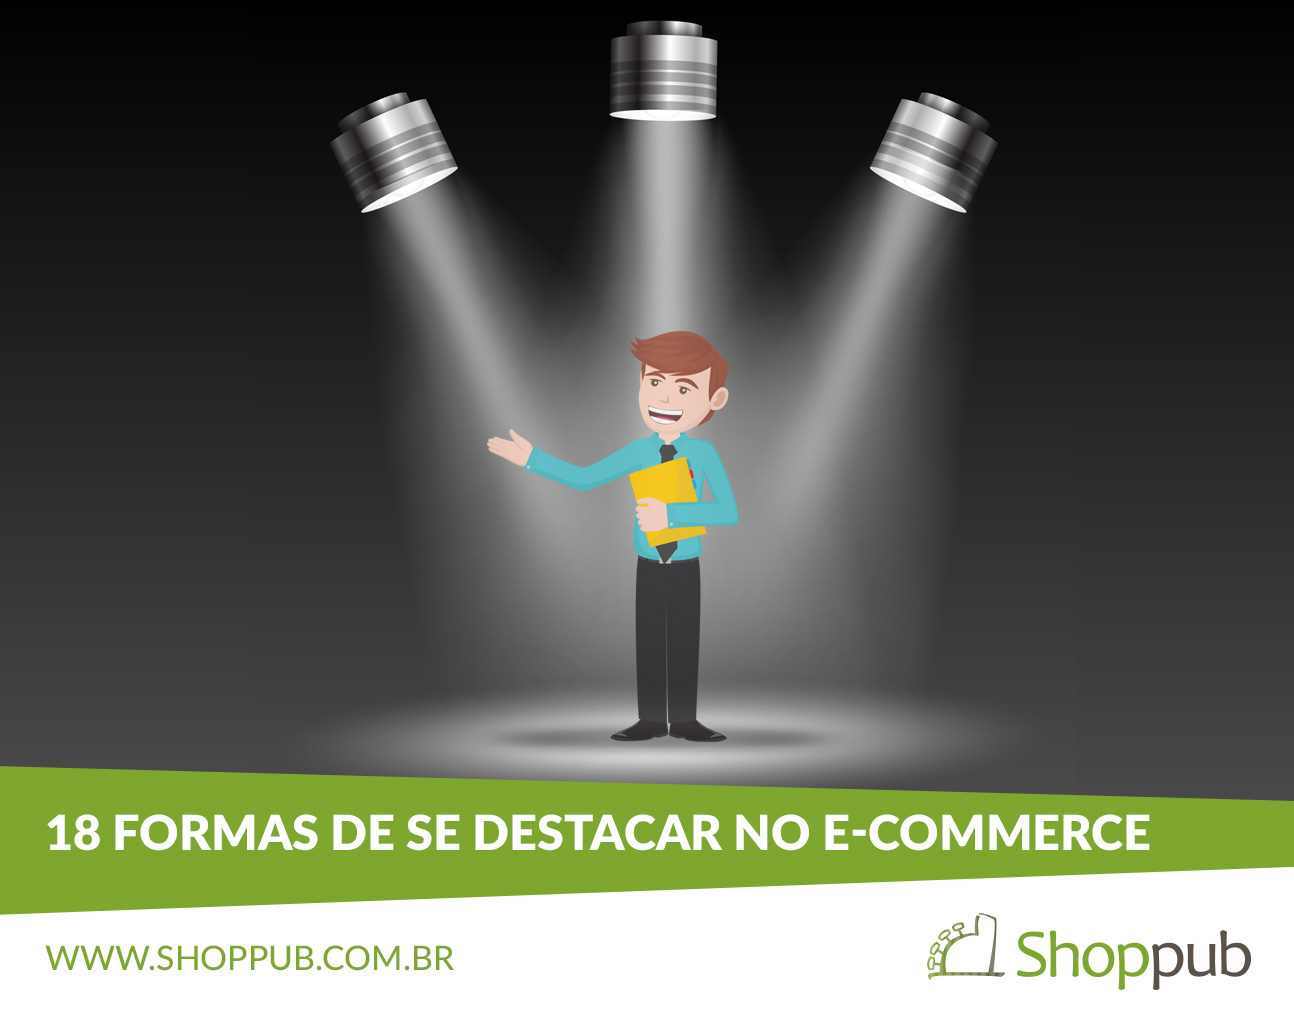 18 formas de se destacar no e-commerce